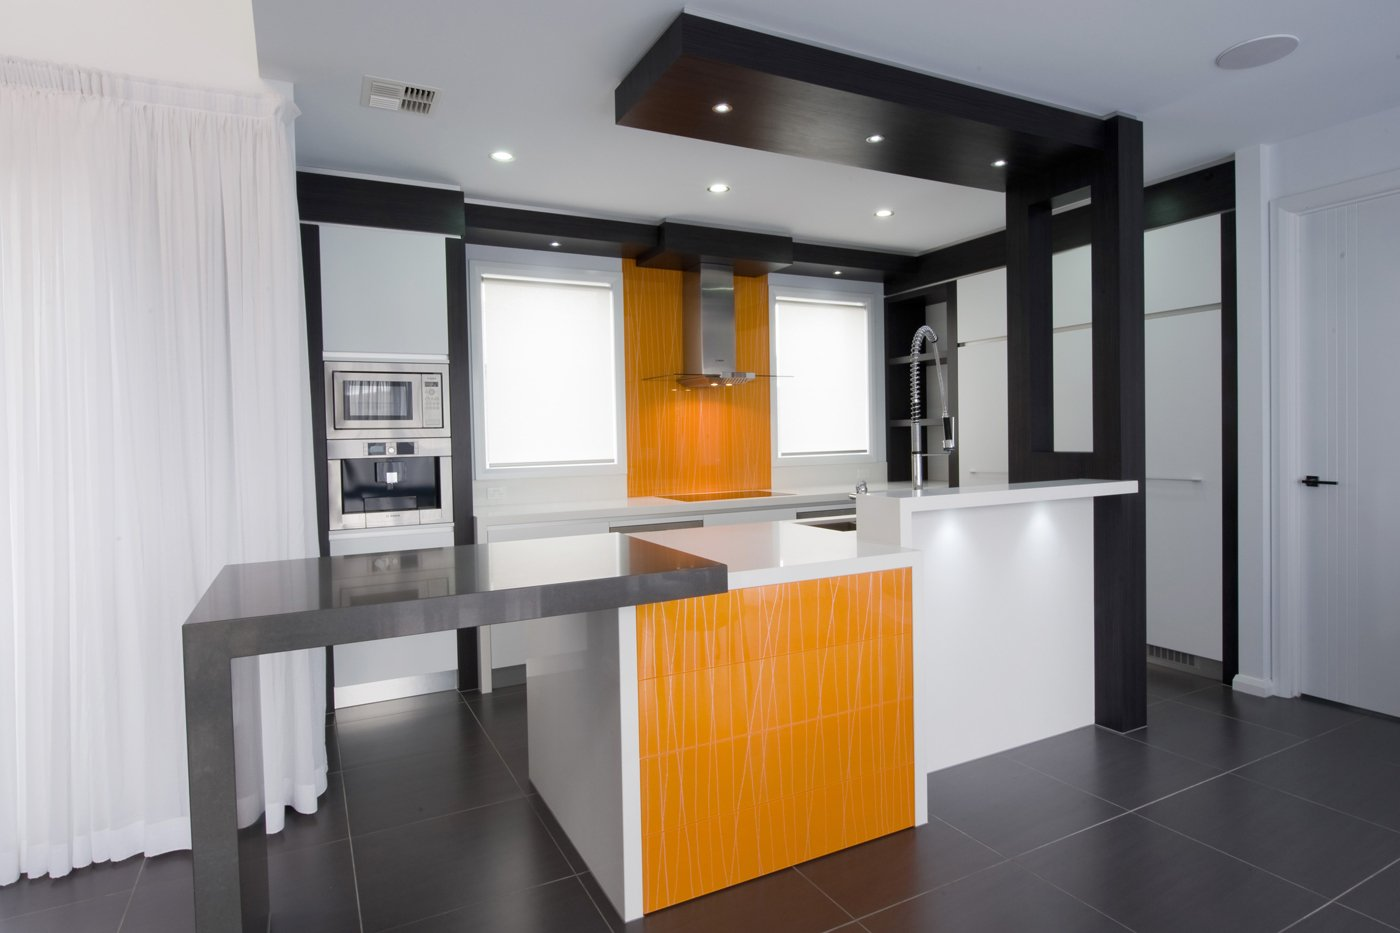 Simplicity kitchens canberra act kitchen designer for Kitchen designs canberra